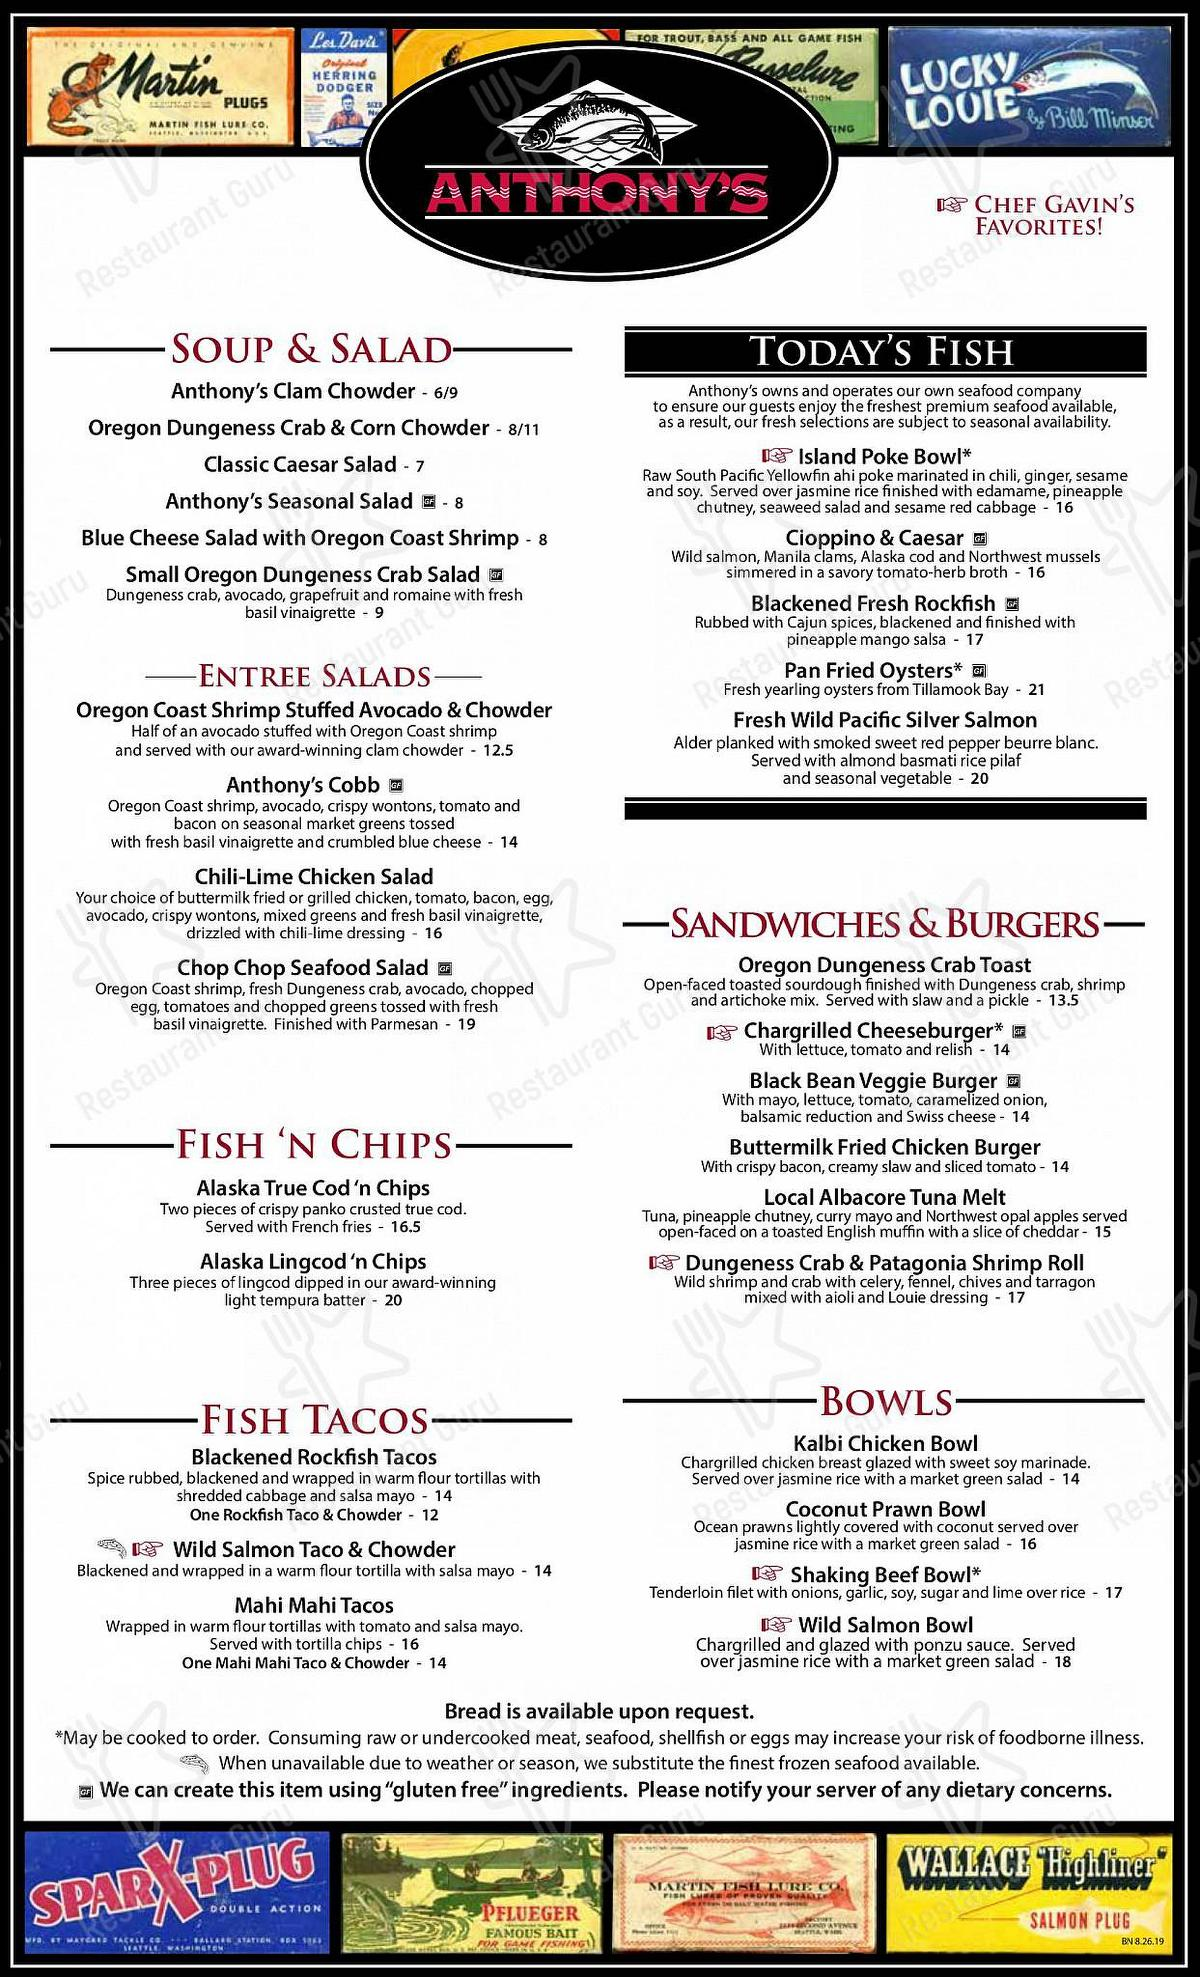 Menu for the Anthony's at the Old Mill District restaurant